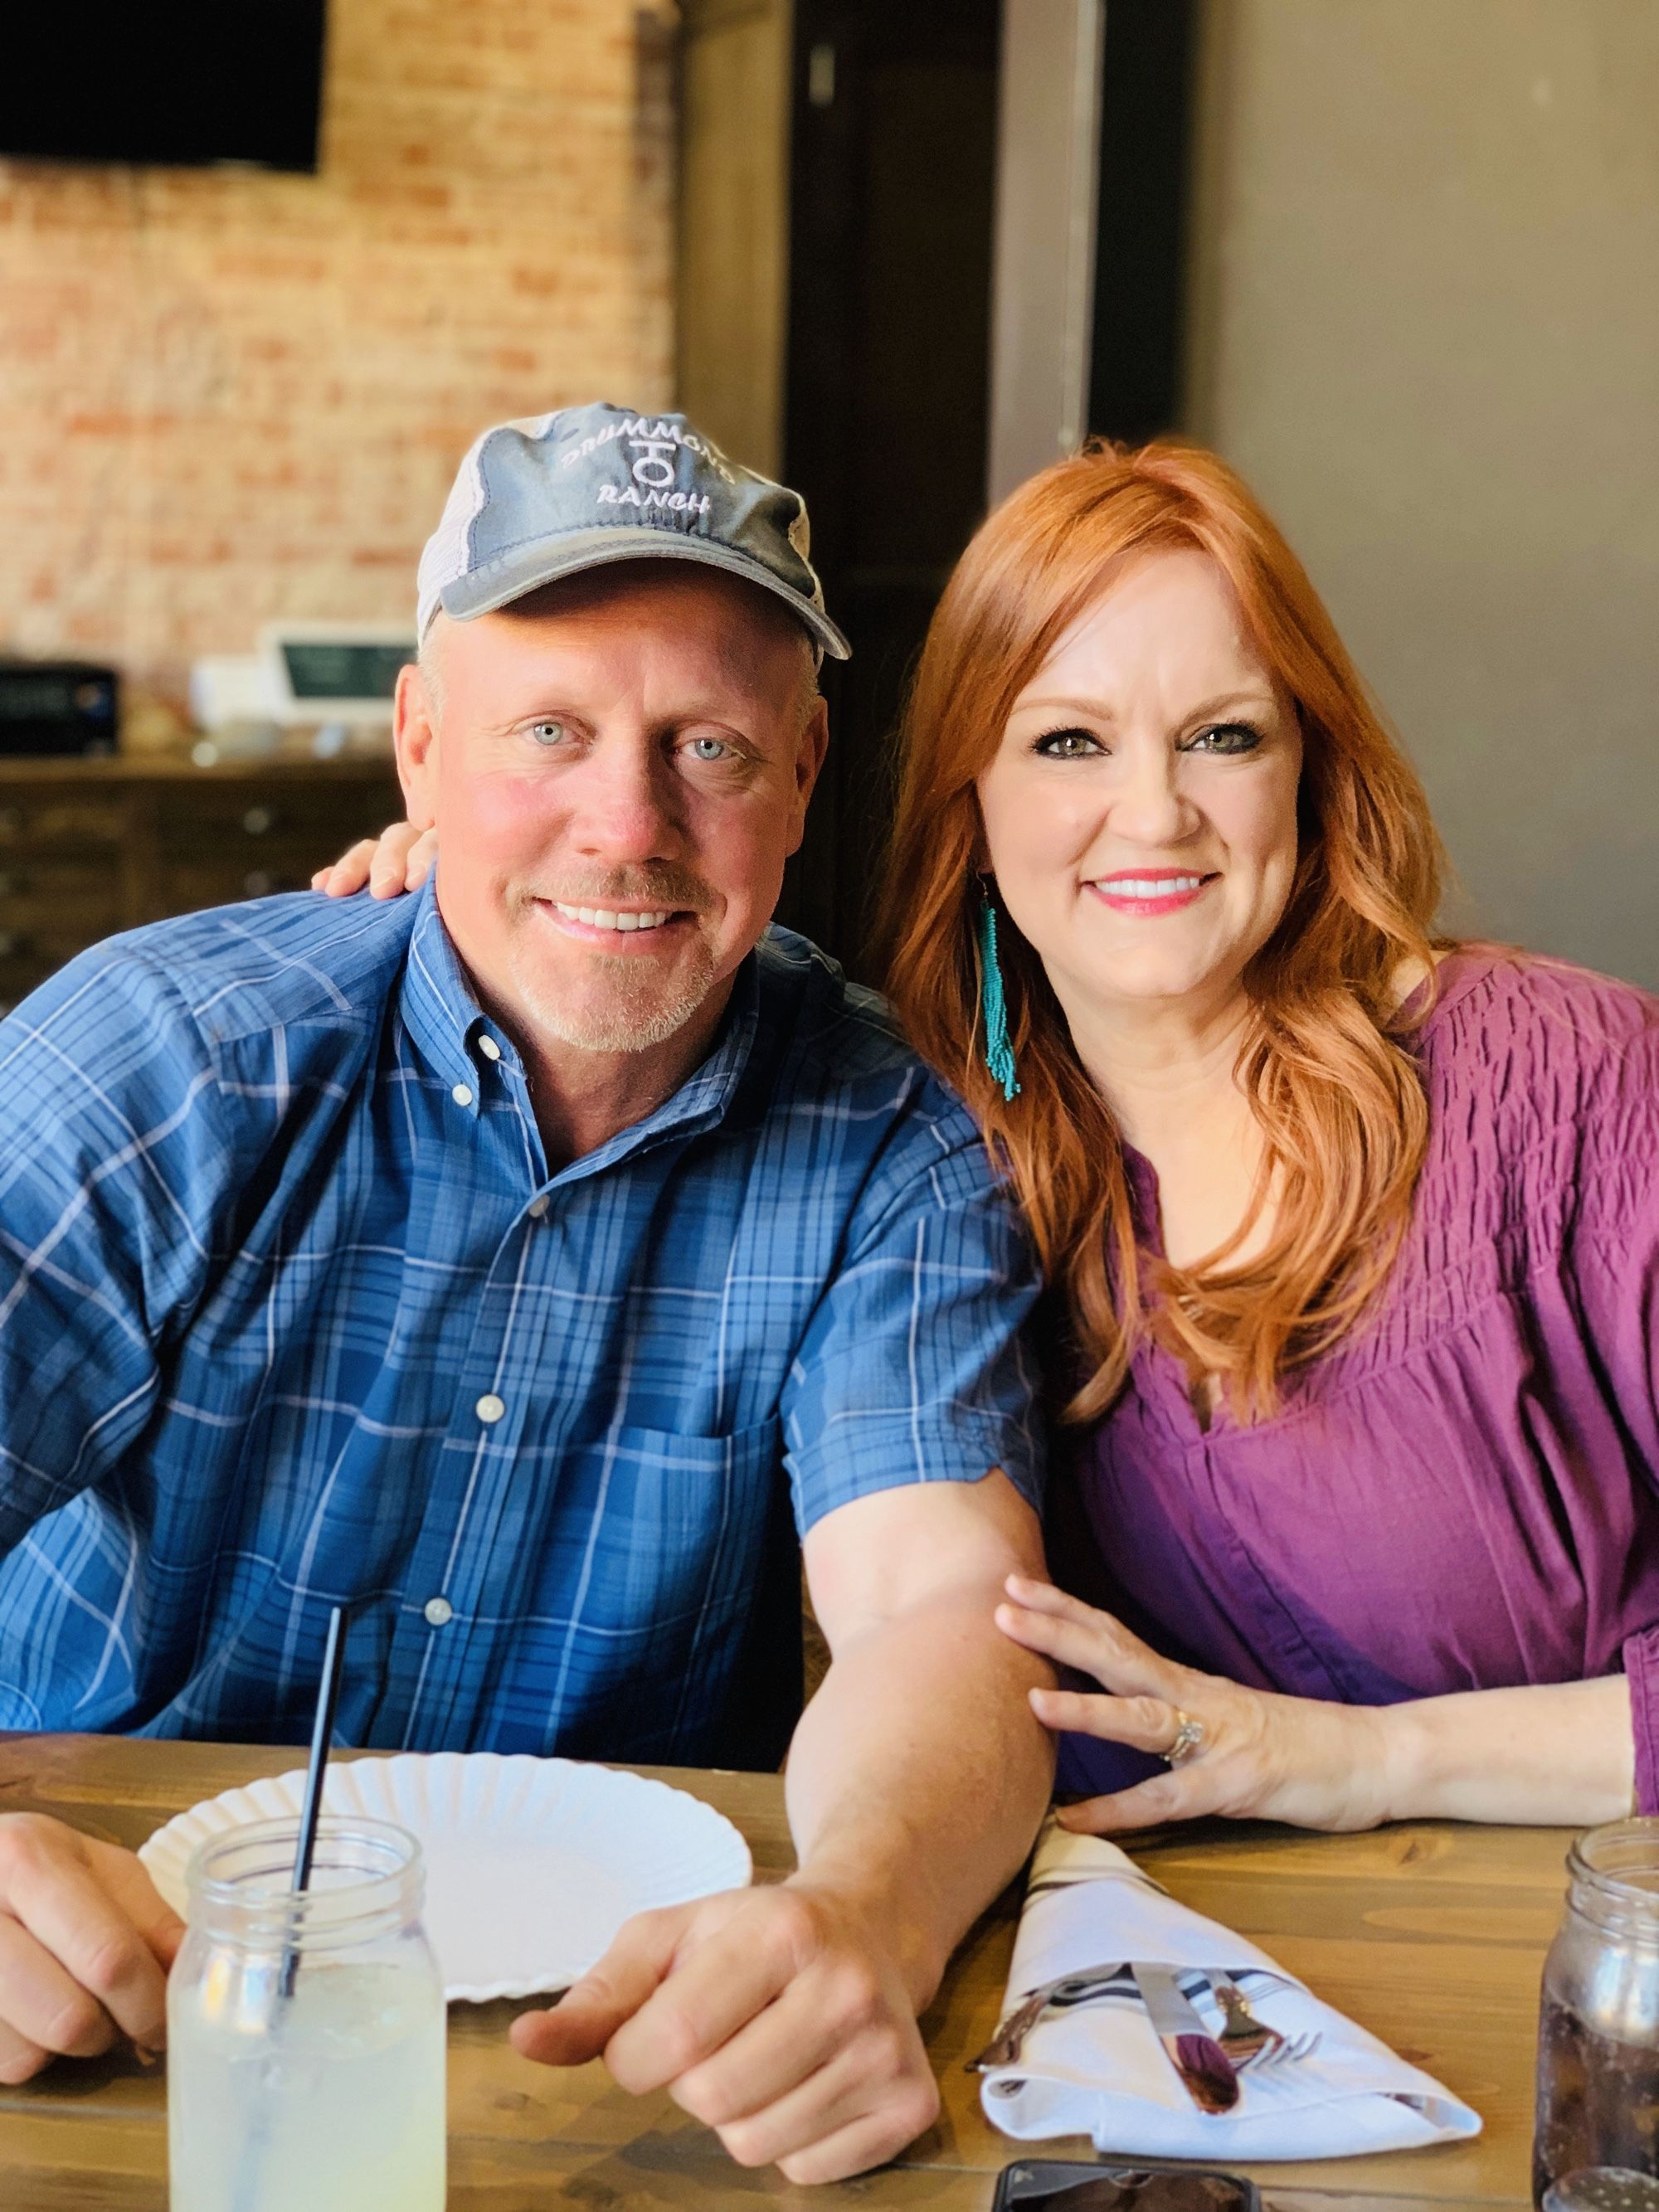 Alex And Ice Cream And Ladd Oh My In 2020 Pioneer Woman Ree Drummond Pioneer Woman Ree Drummond